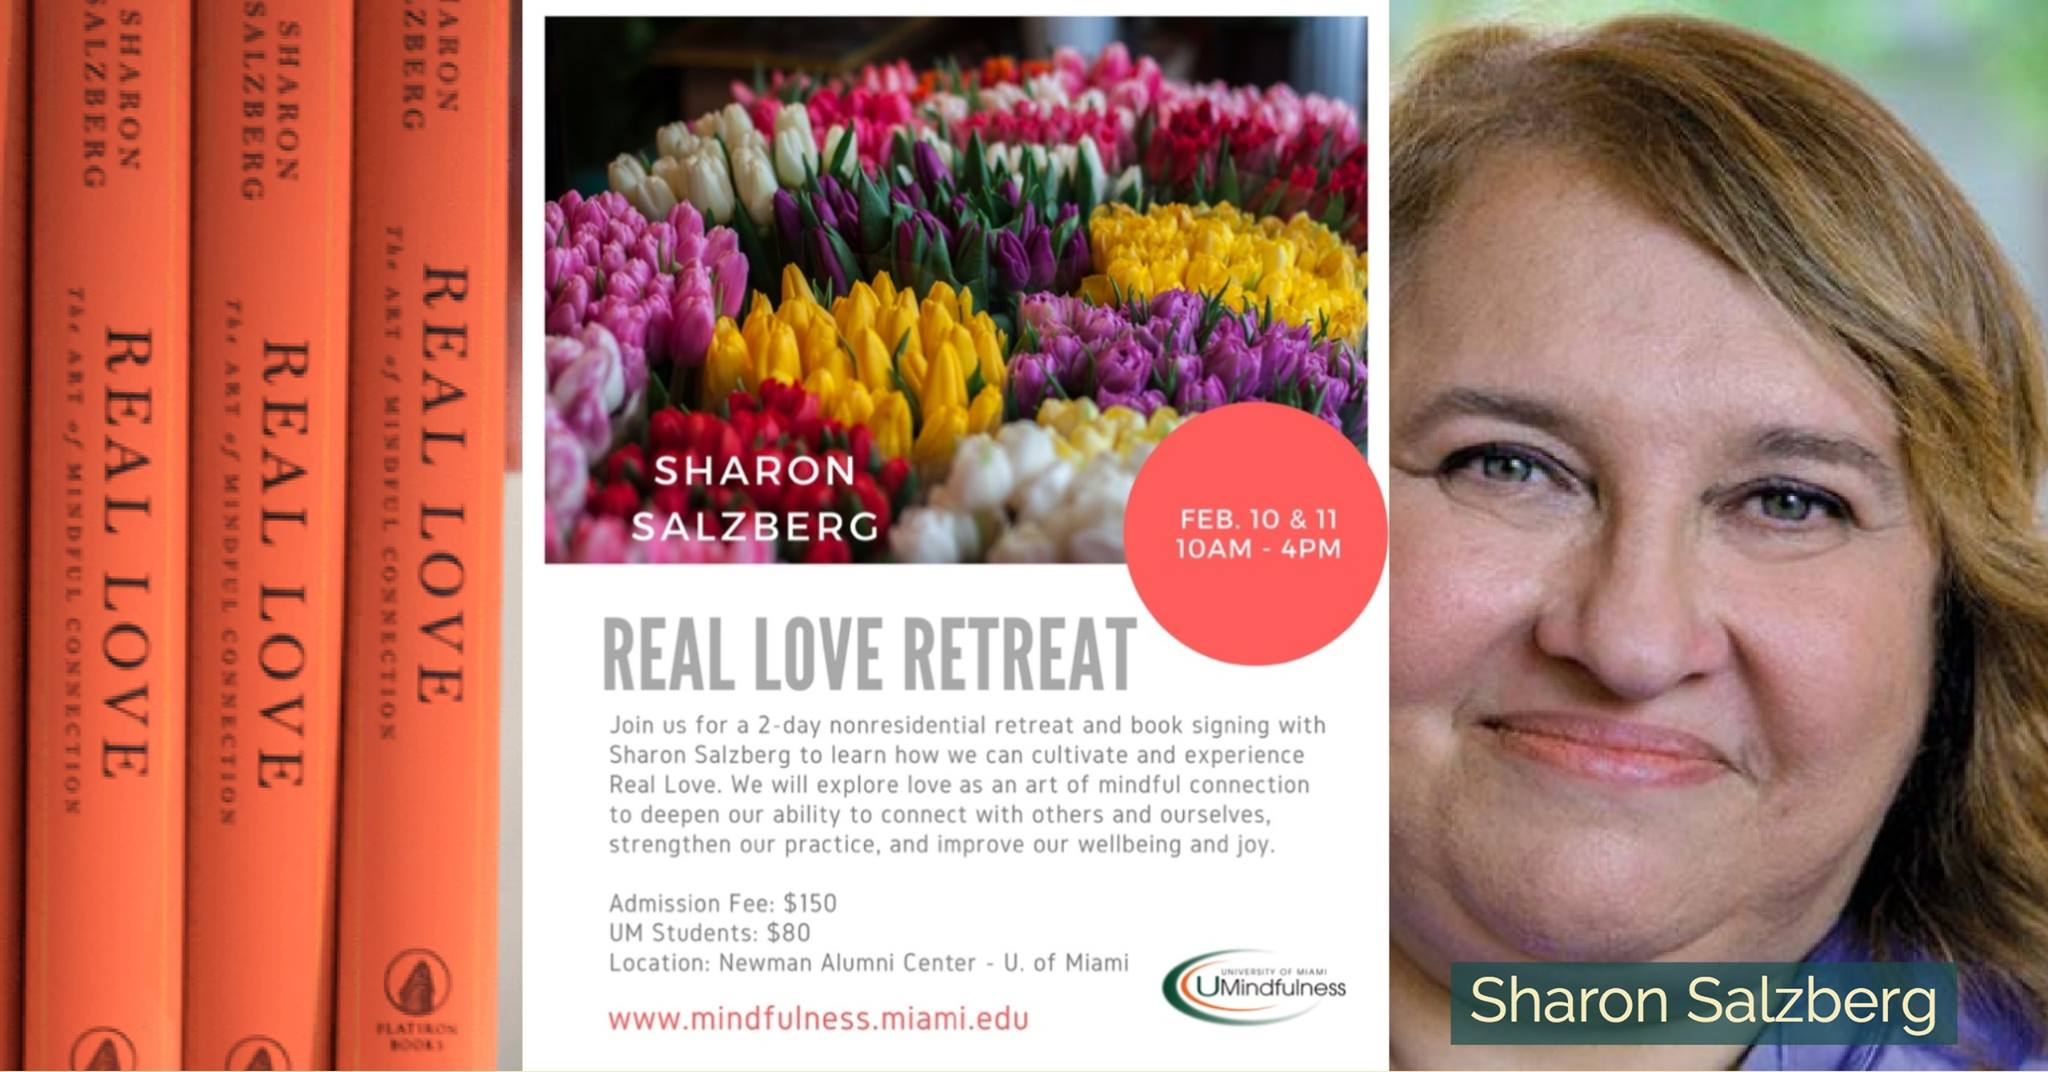 Real Love - A Nonresidential Retreat with Sharon Salzberg